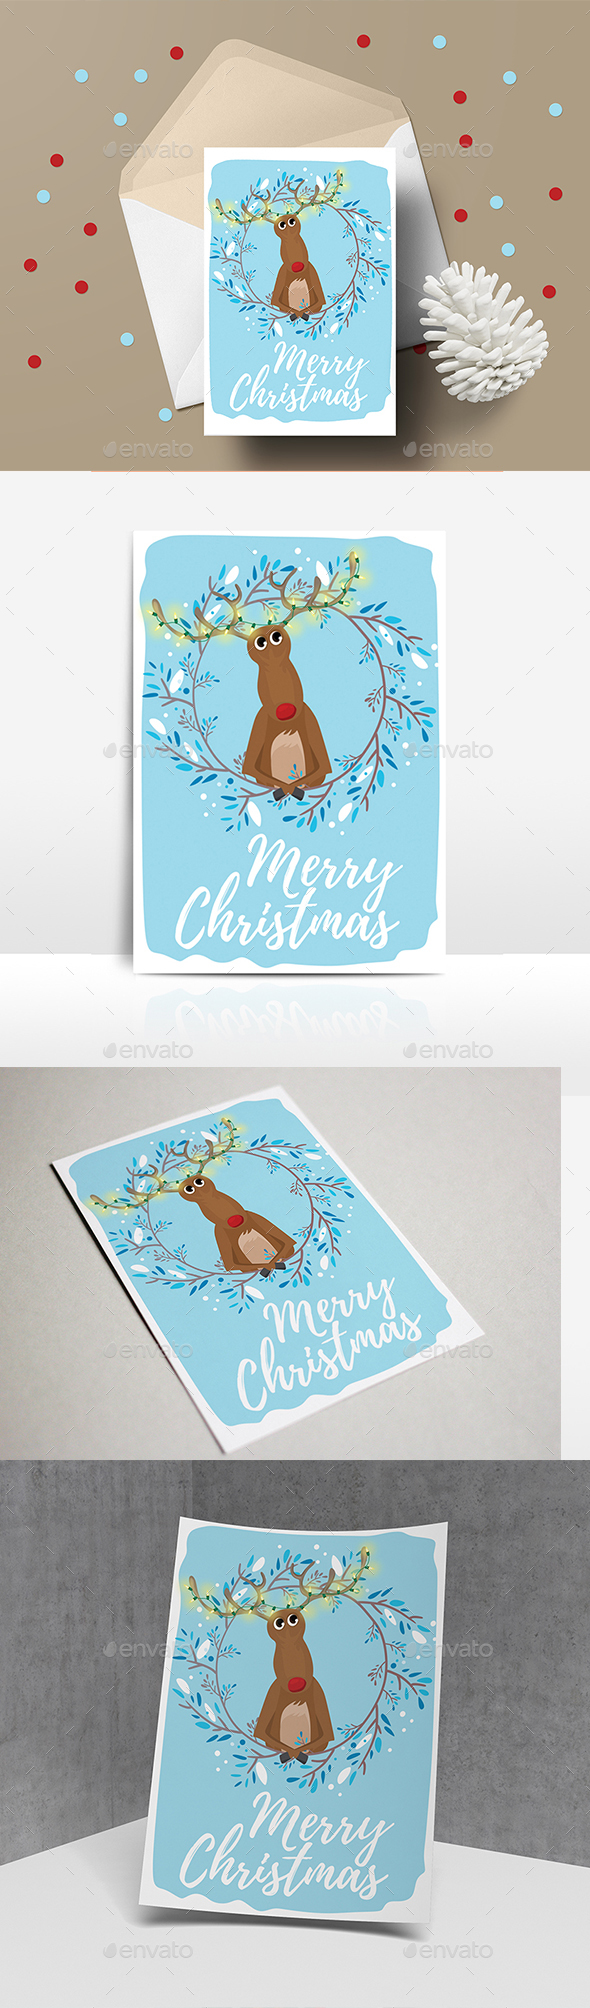 GraphicRiver Christmas Card 21150237